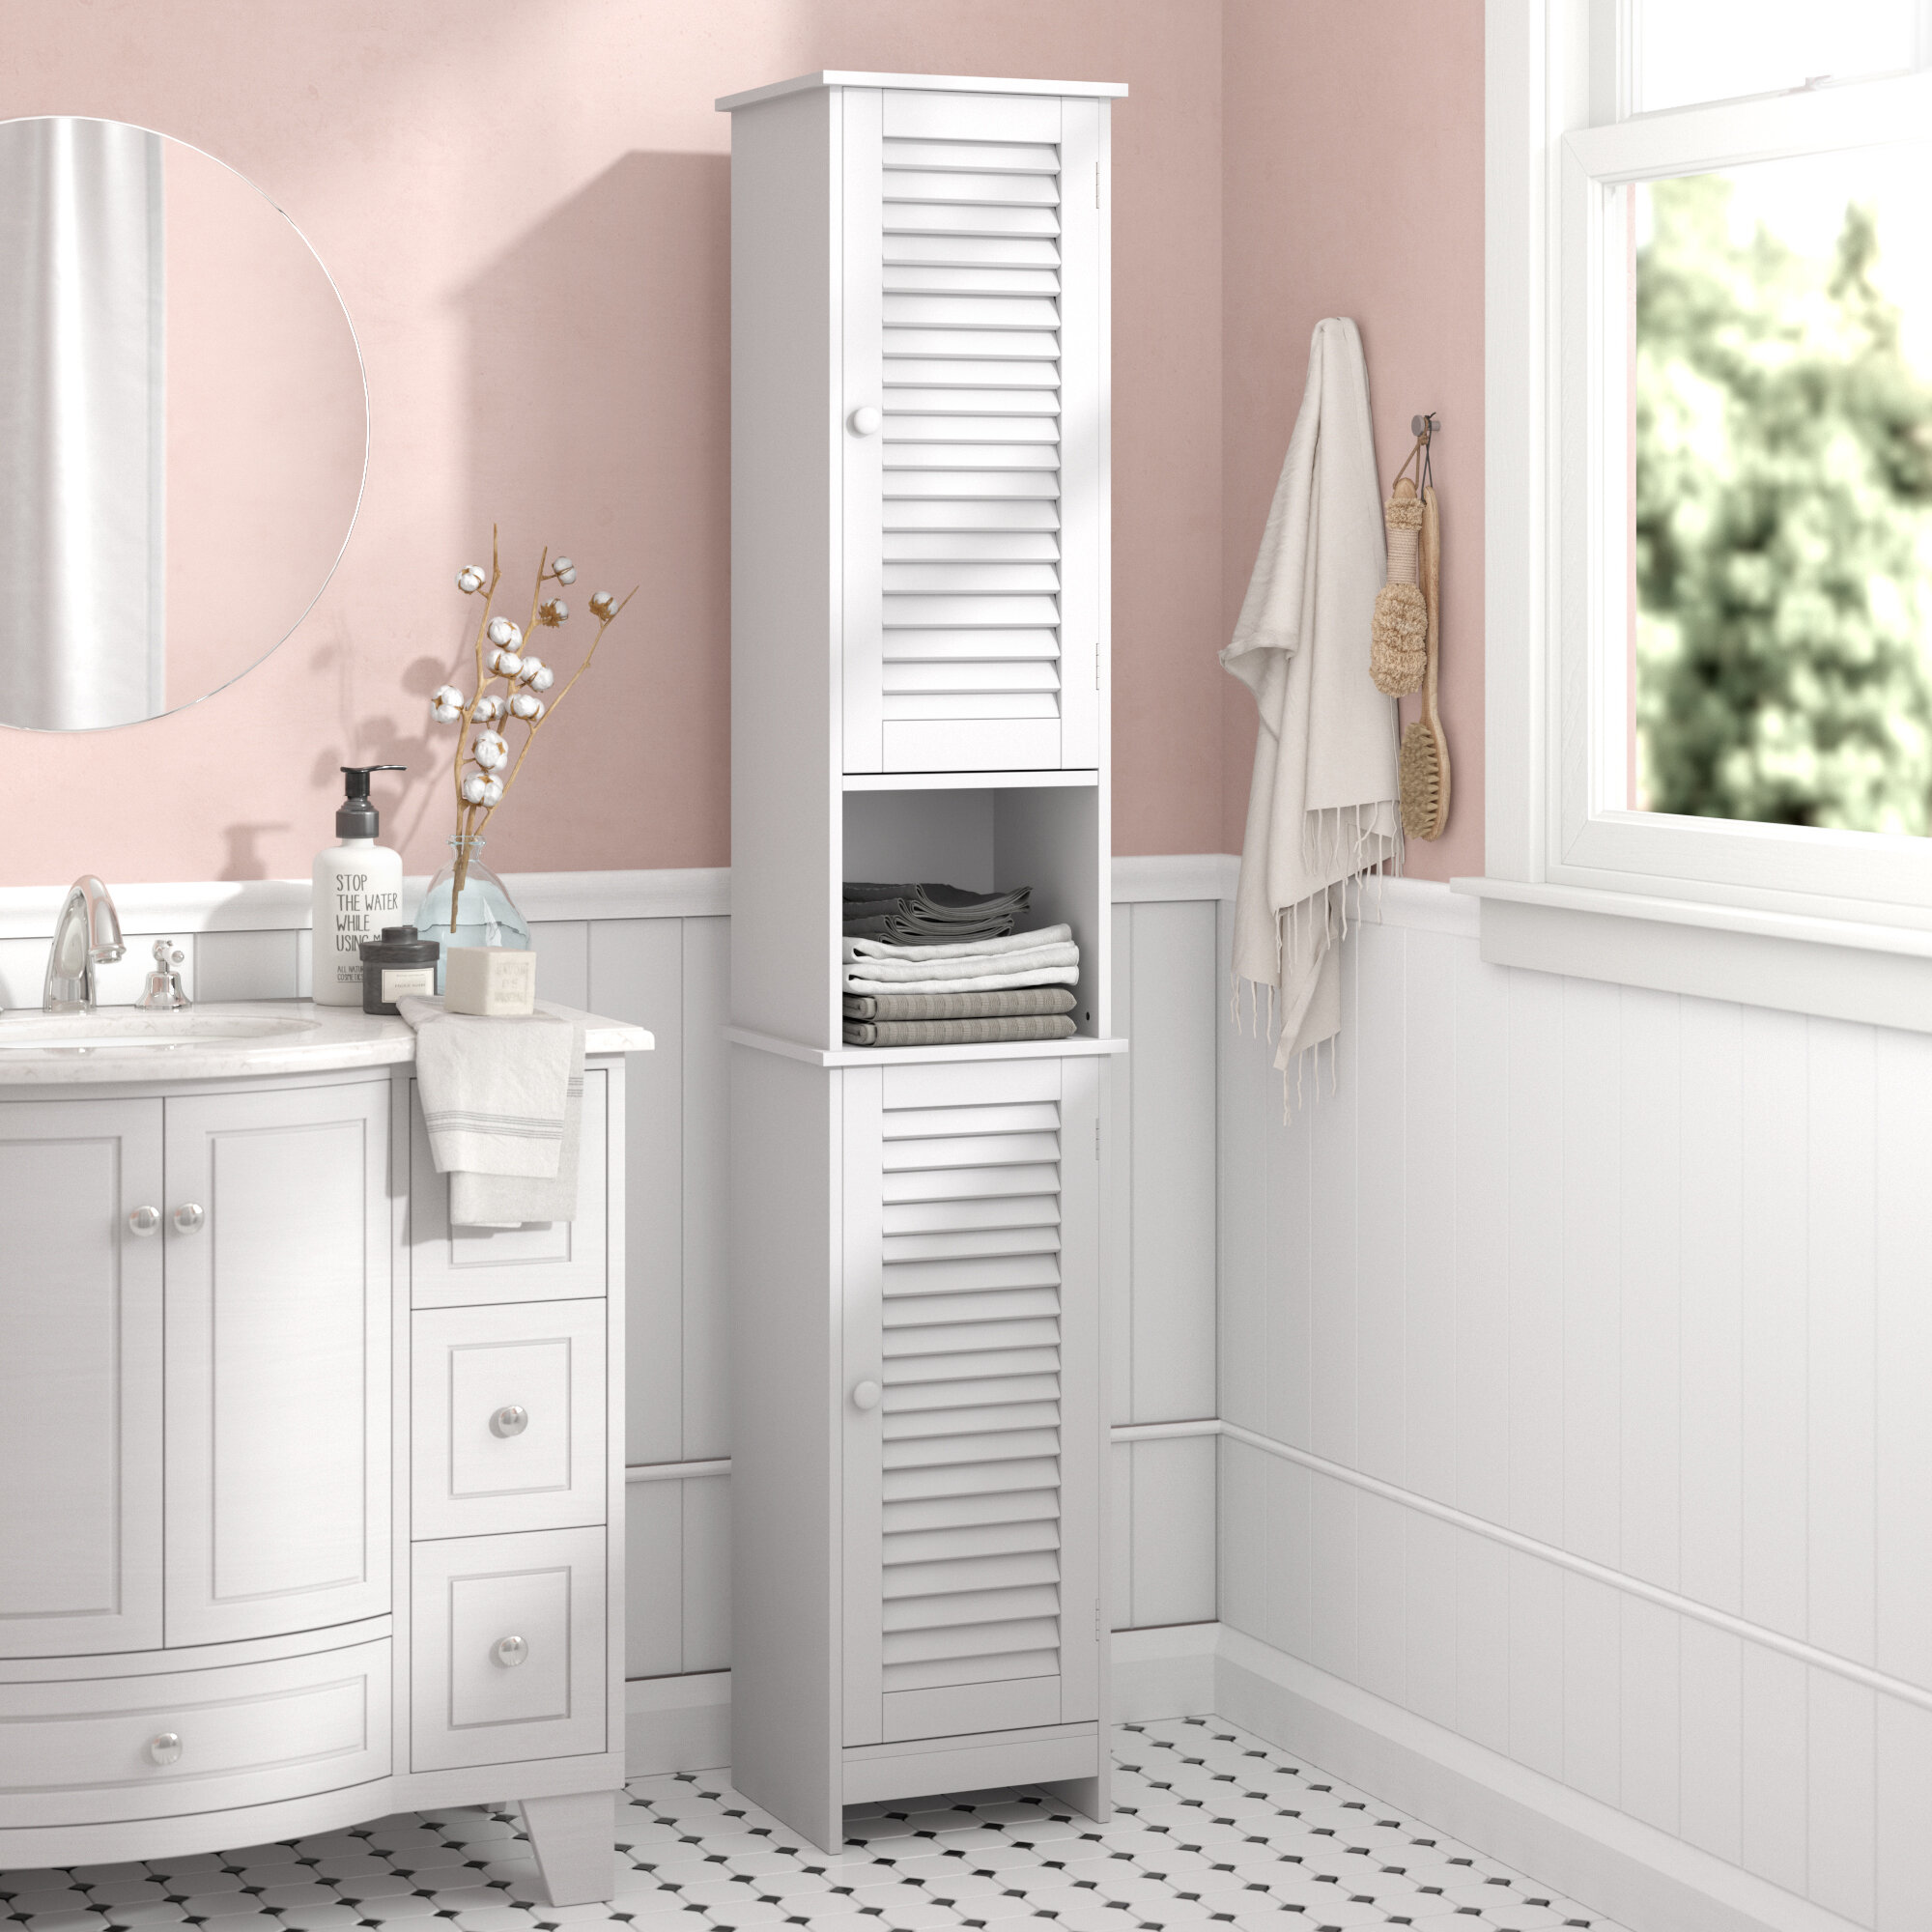 5 x 5cm Free Standing Cabinet